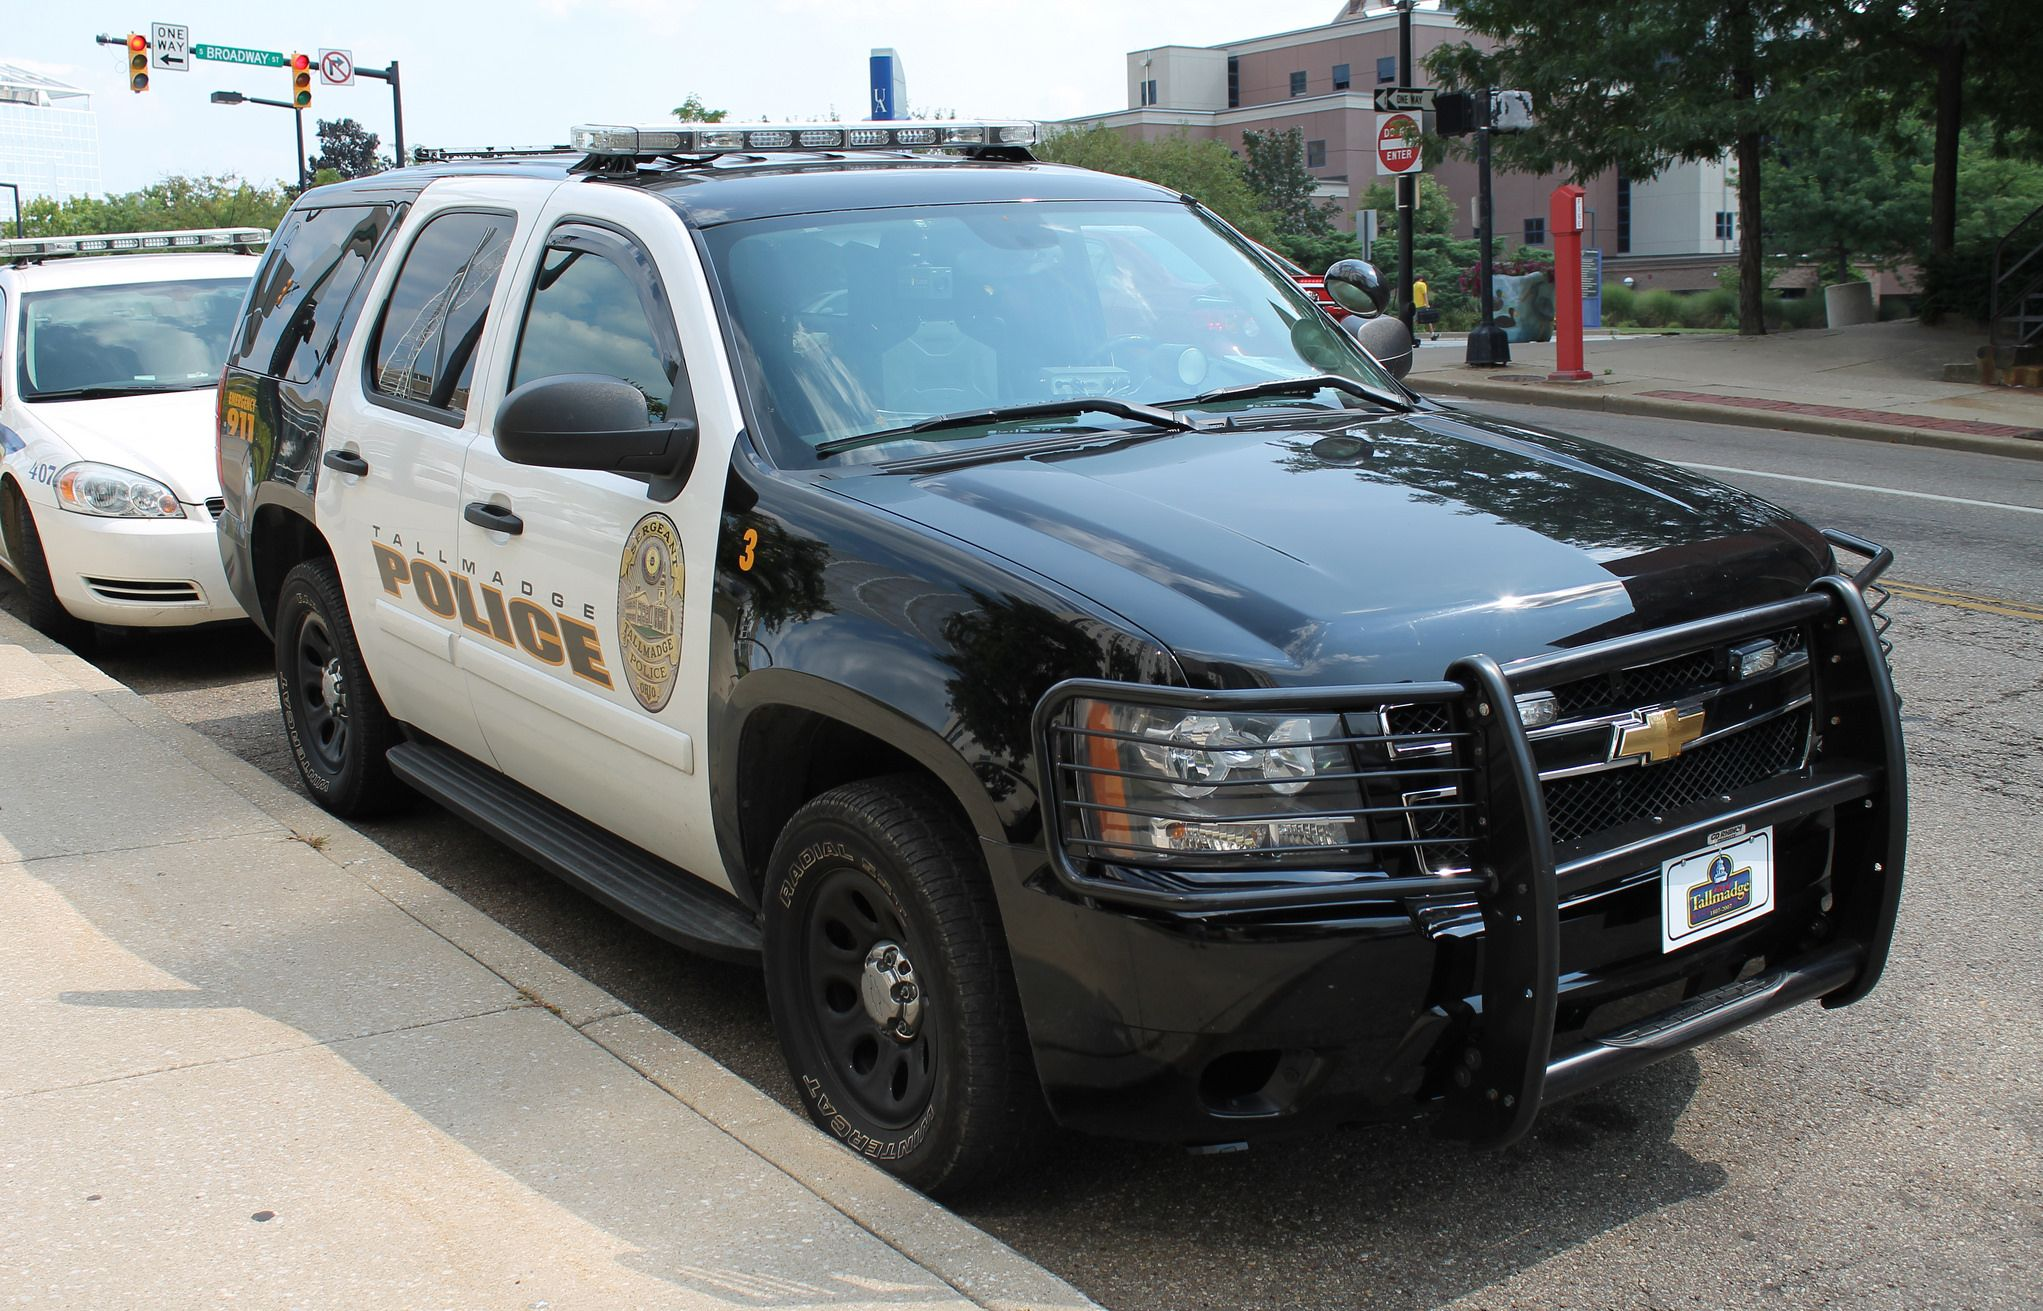 Ala. City Makes Much-Needed Update to Police Fleet